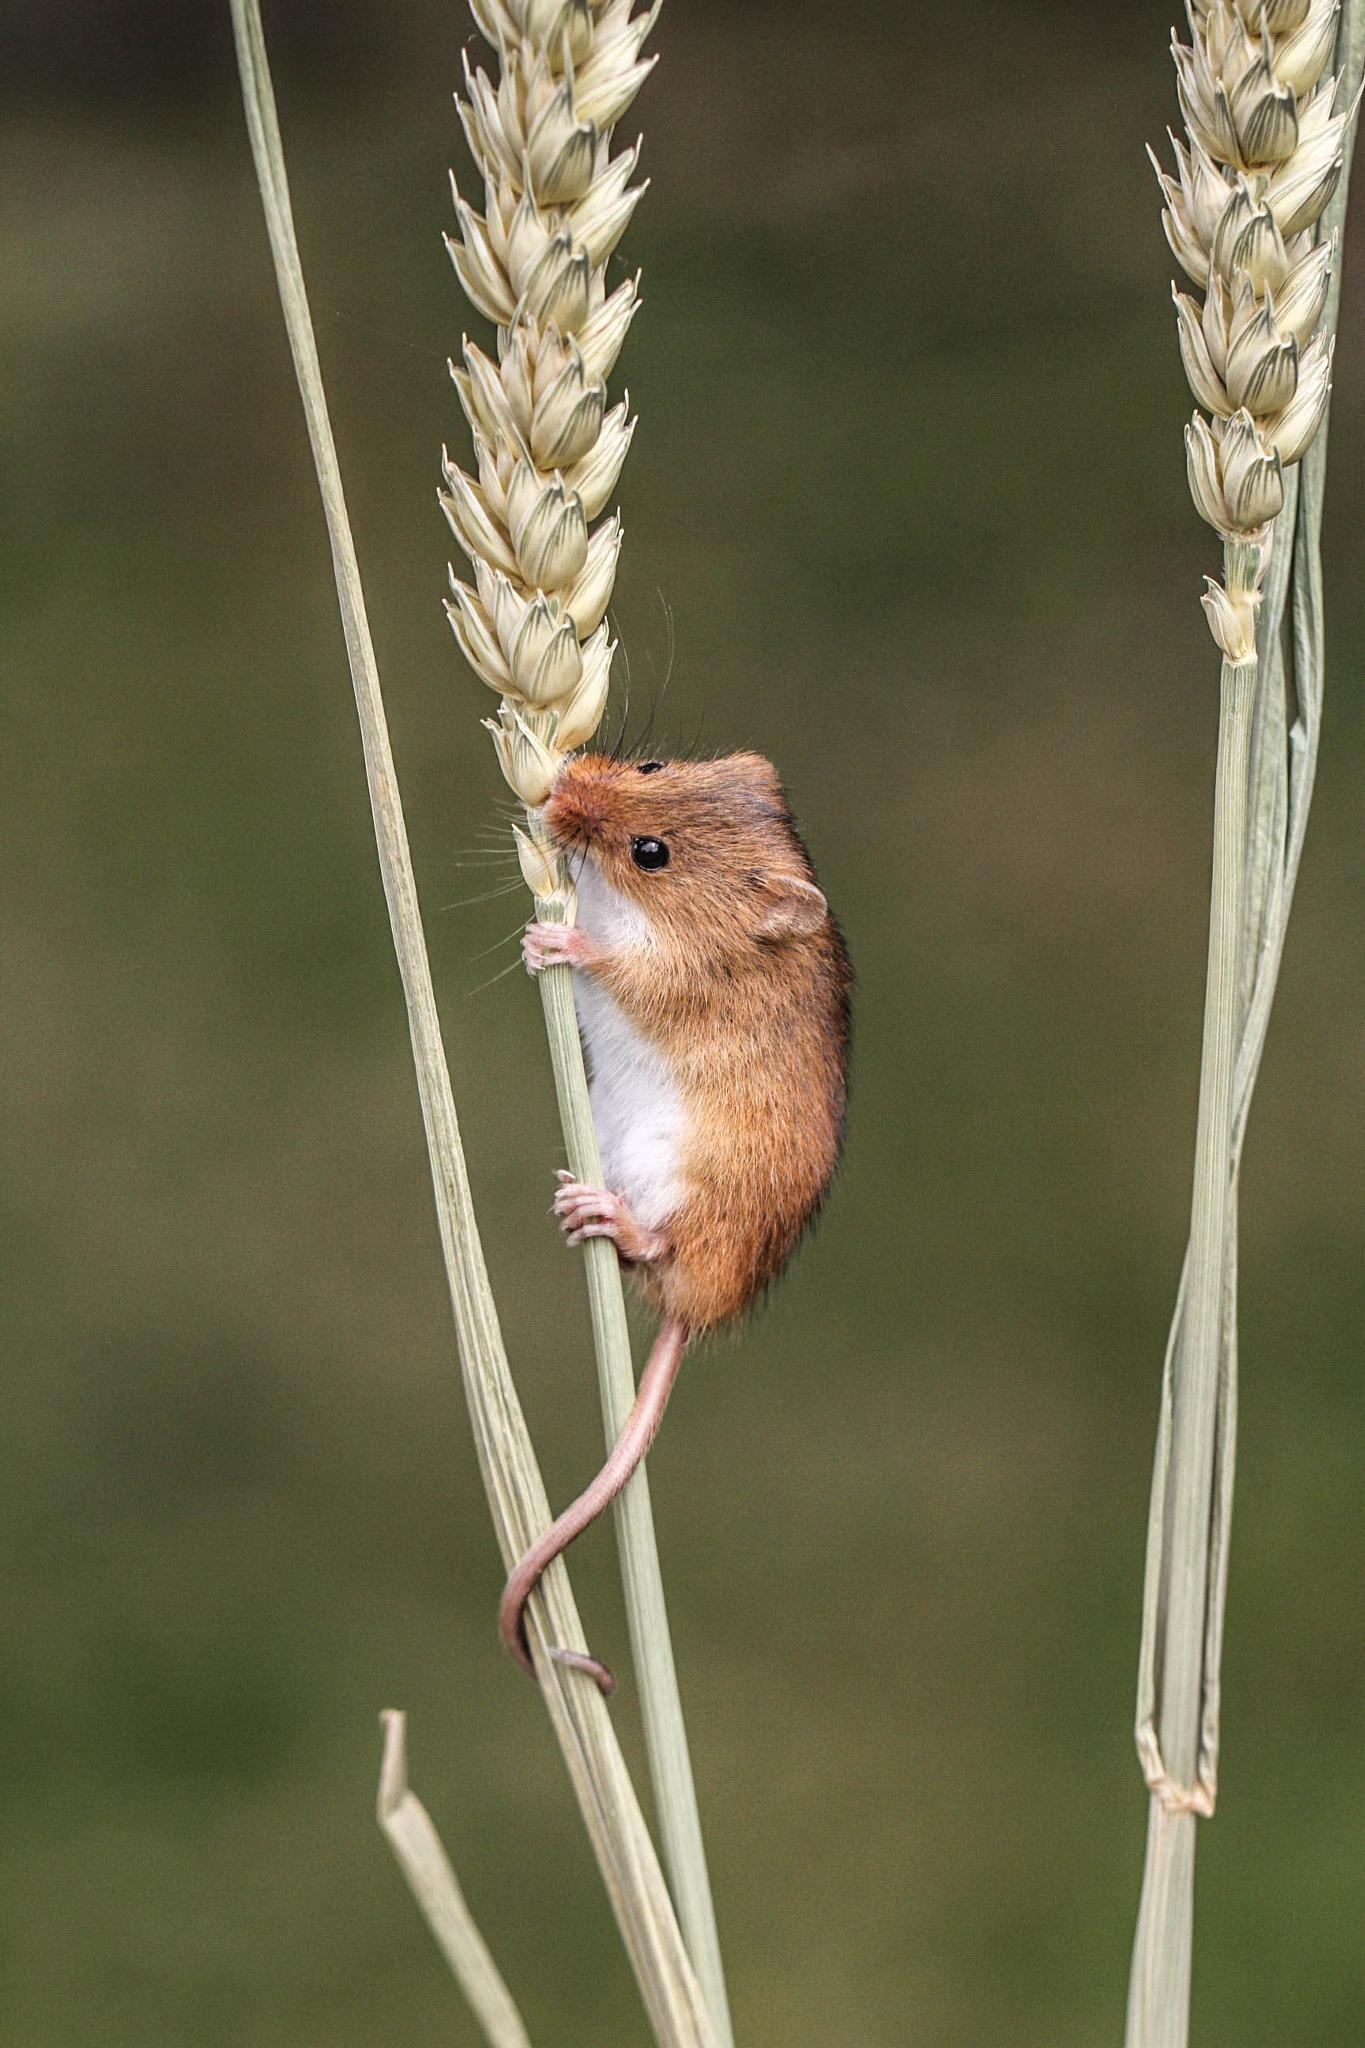 Mouse & wheat by garry-chisholm1